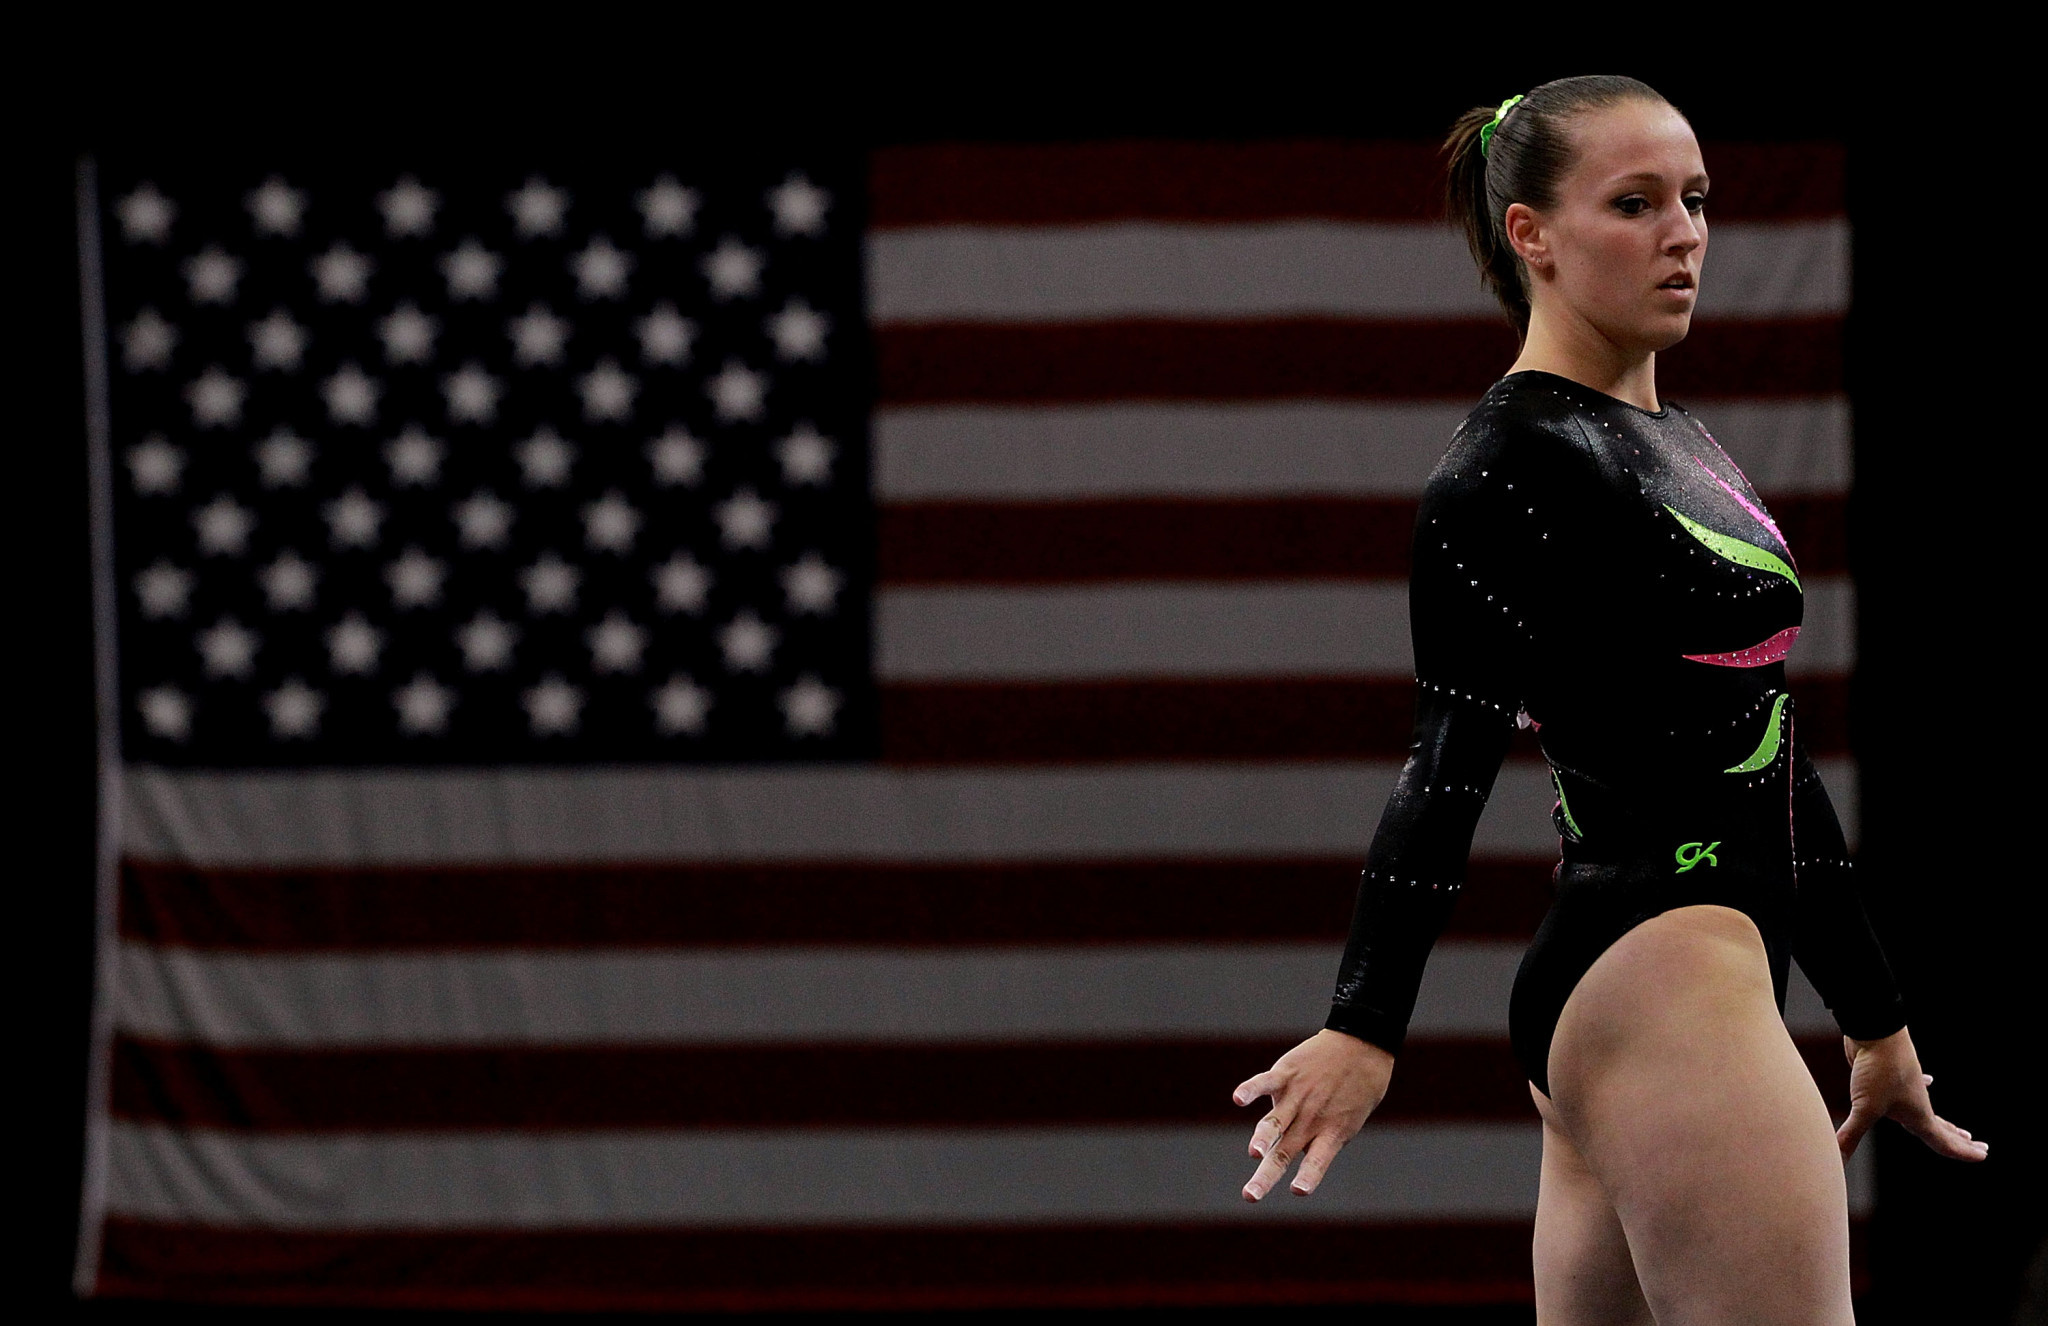 American gymnast Memmel could compete at Tokyo 2020 after announcing return to sport